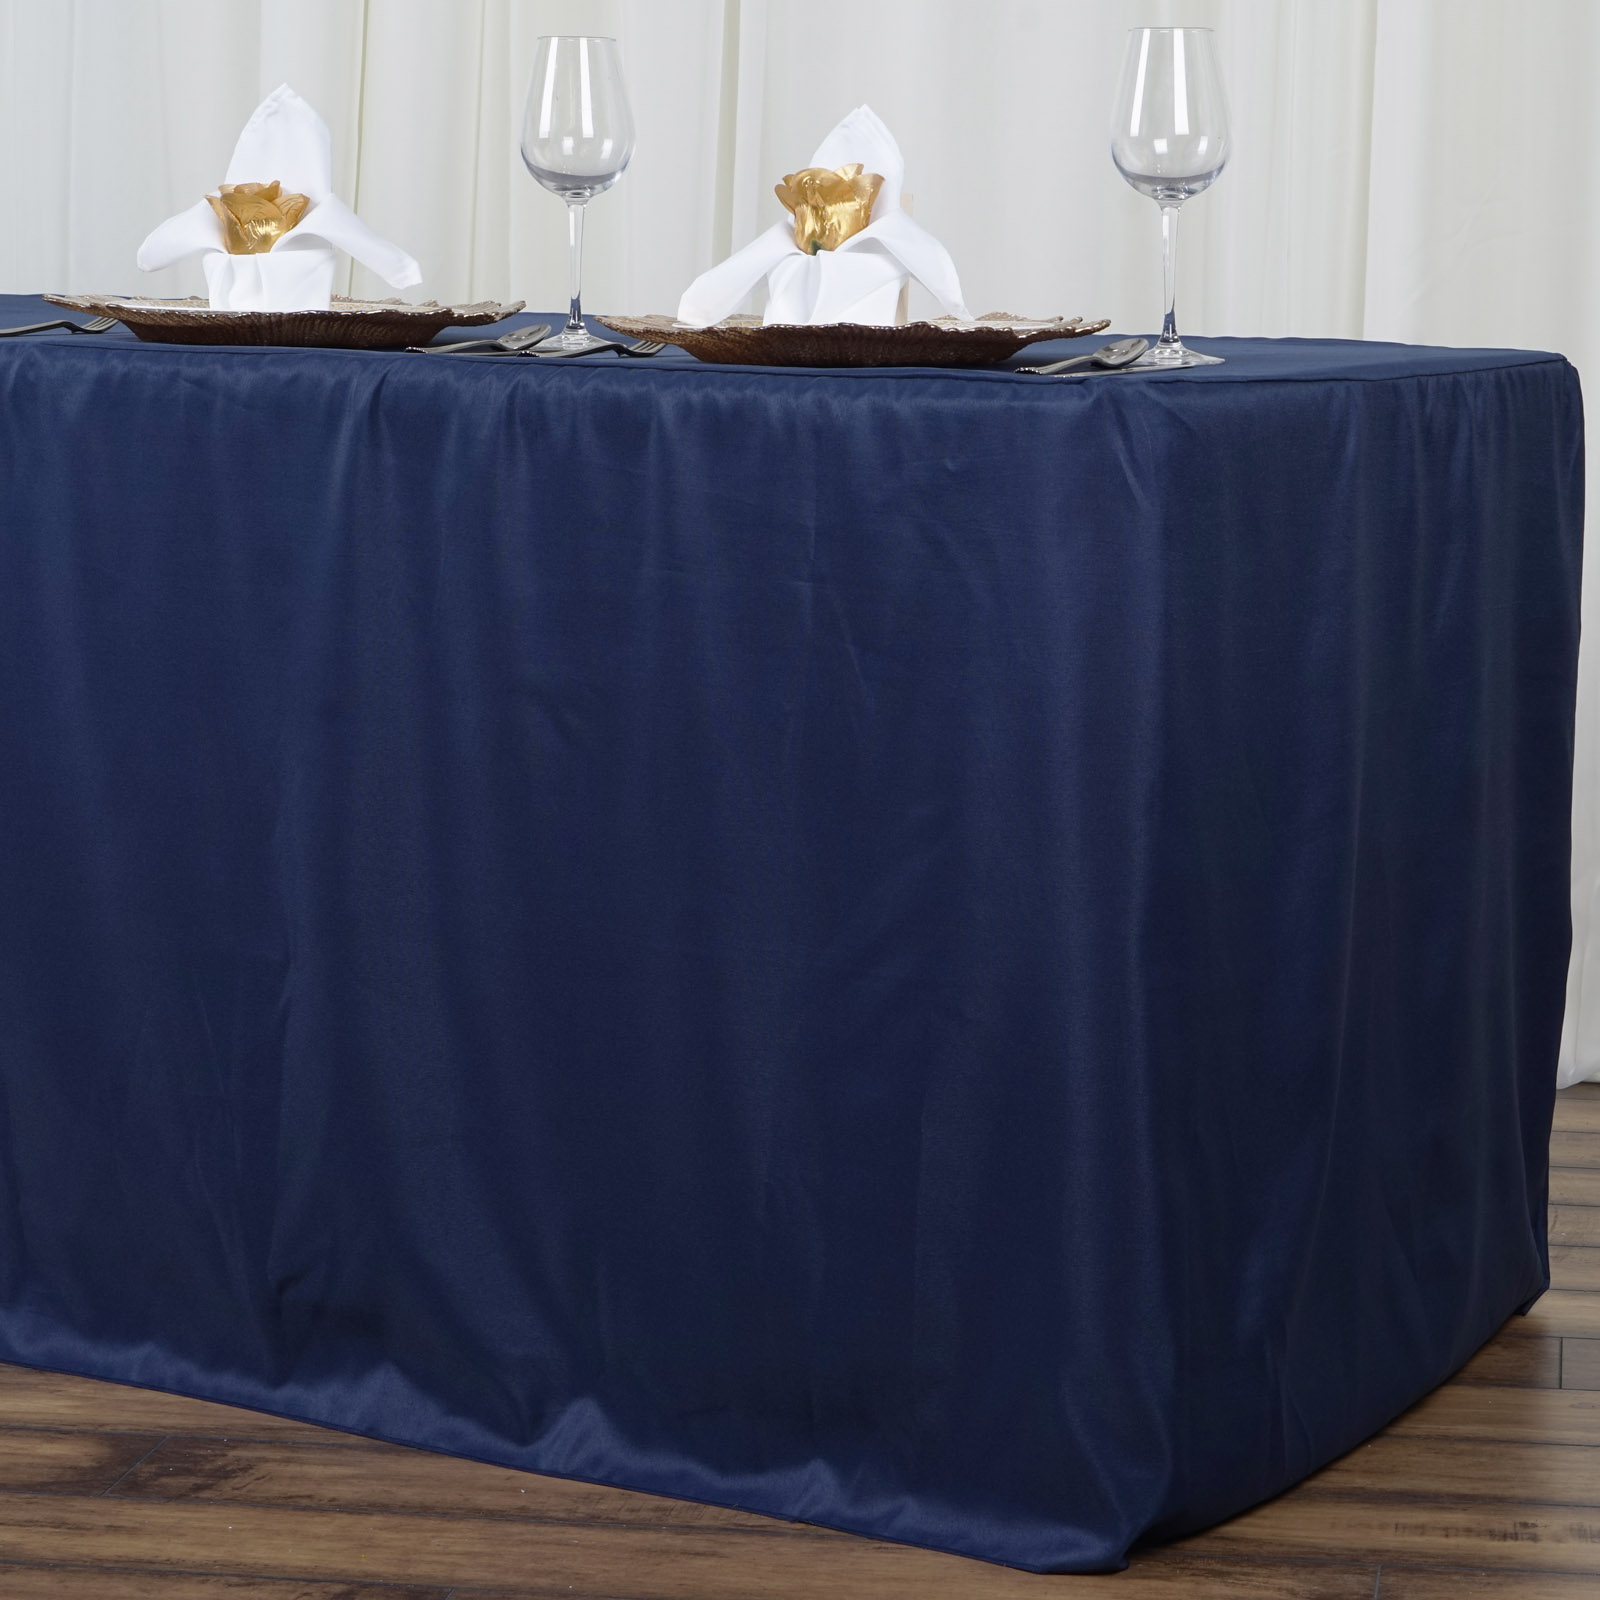 8 Feet Fitted Polyester Banquet Tablecloth Wedding Table